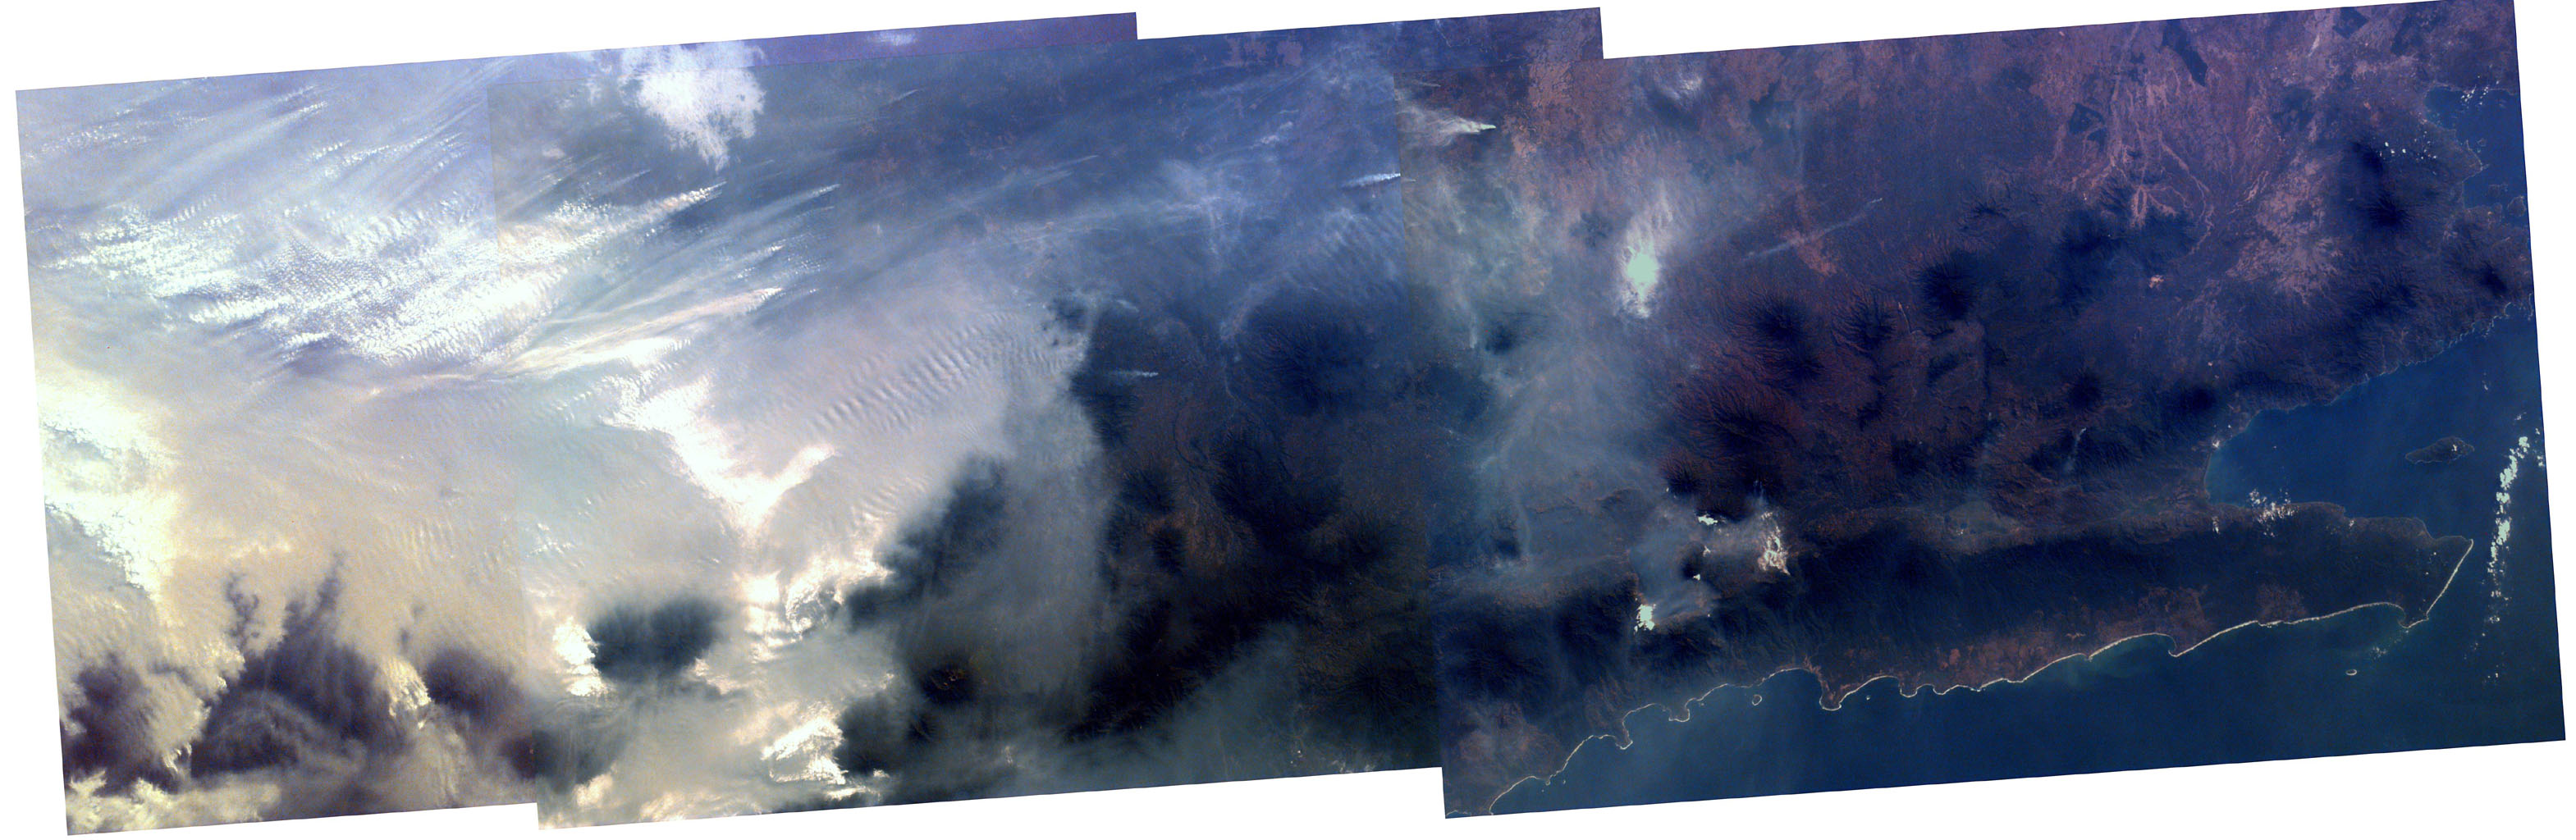 Middle school students across the country photographed the fires and smoke over southern Sumatra from a camera aboard the Space Shuttle Atlantis September 27, 1997.